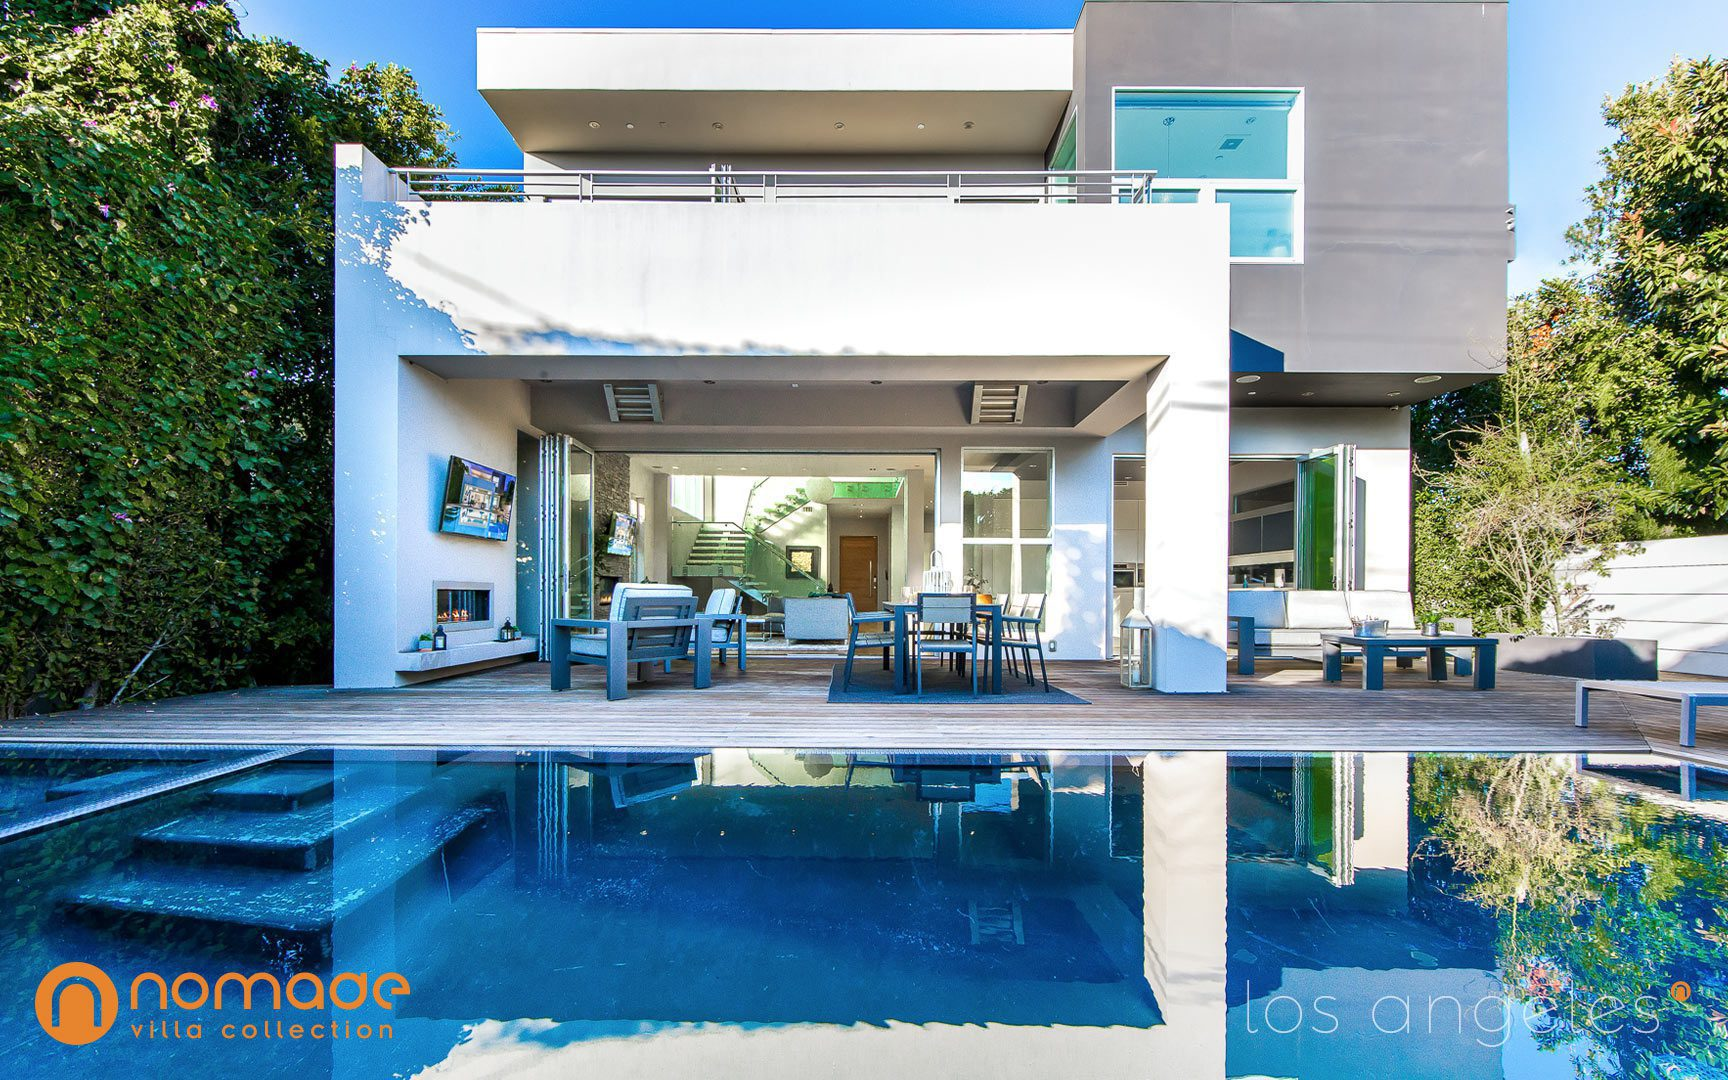 Drexel Grove - Los Angeles rental home - Nomade Villa Collection